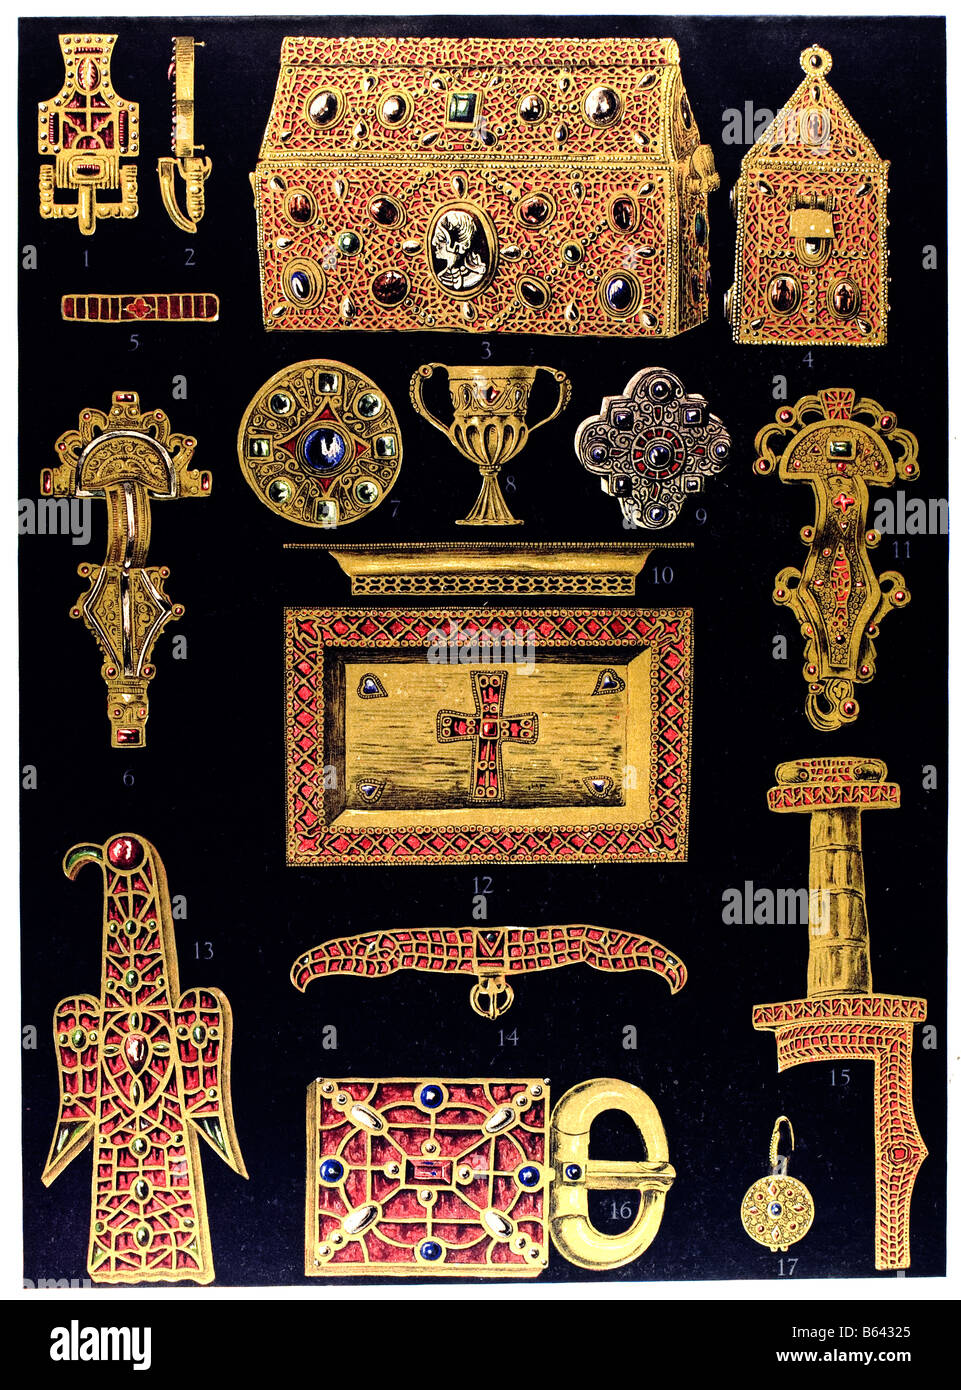 Germanic Ornament in late classical period, Merovingian golden arts and crafts. - Stock Image